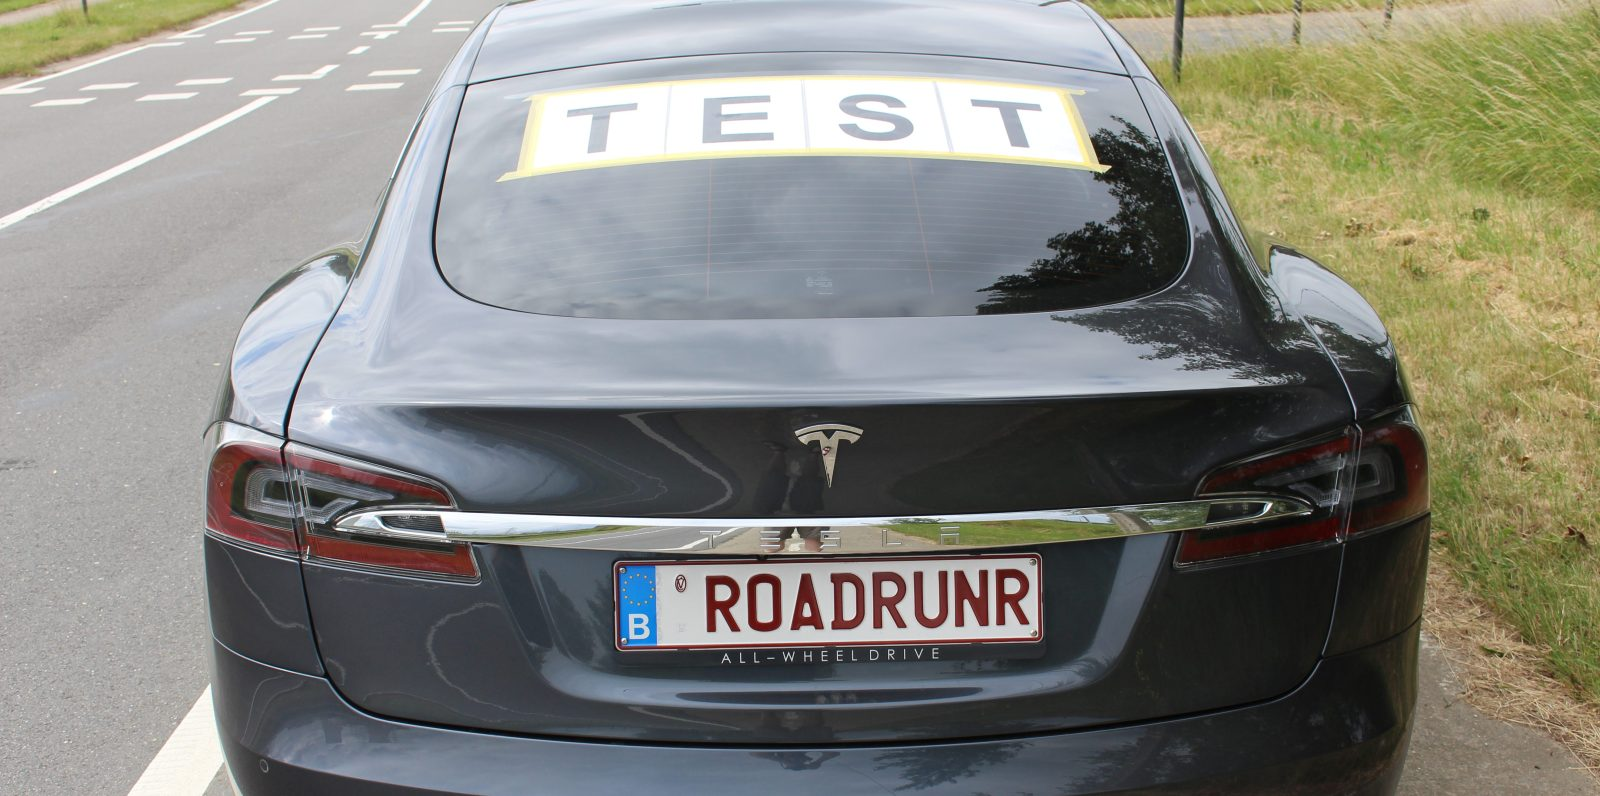 New Tesla Model S hypermiling record: over 900 km (560 miles) on a ...